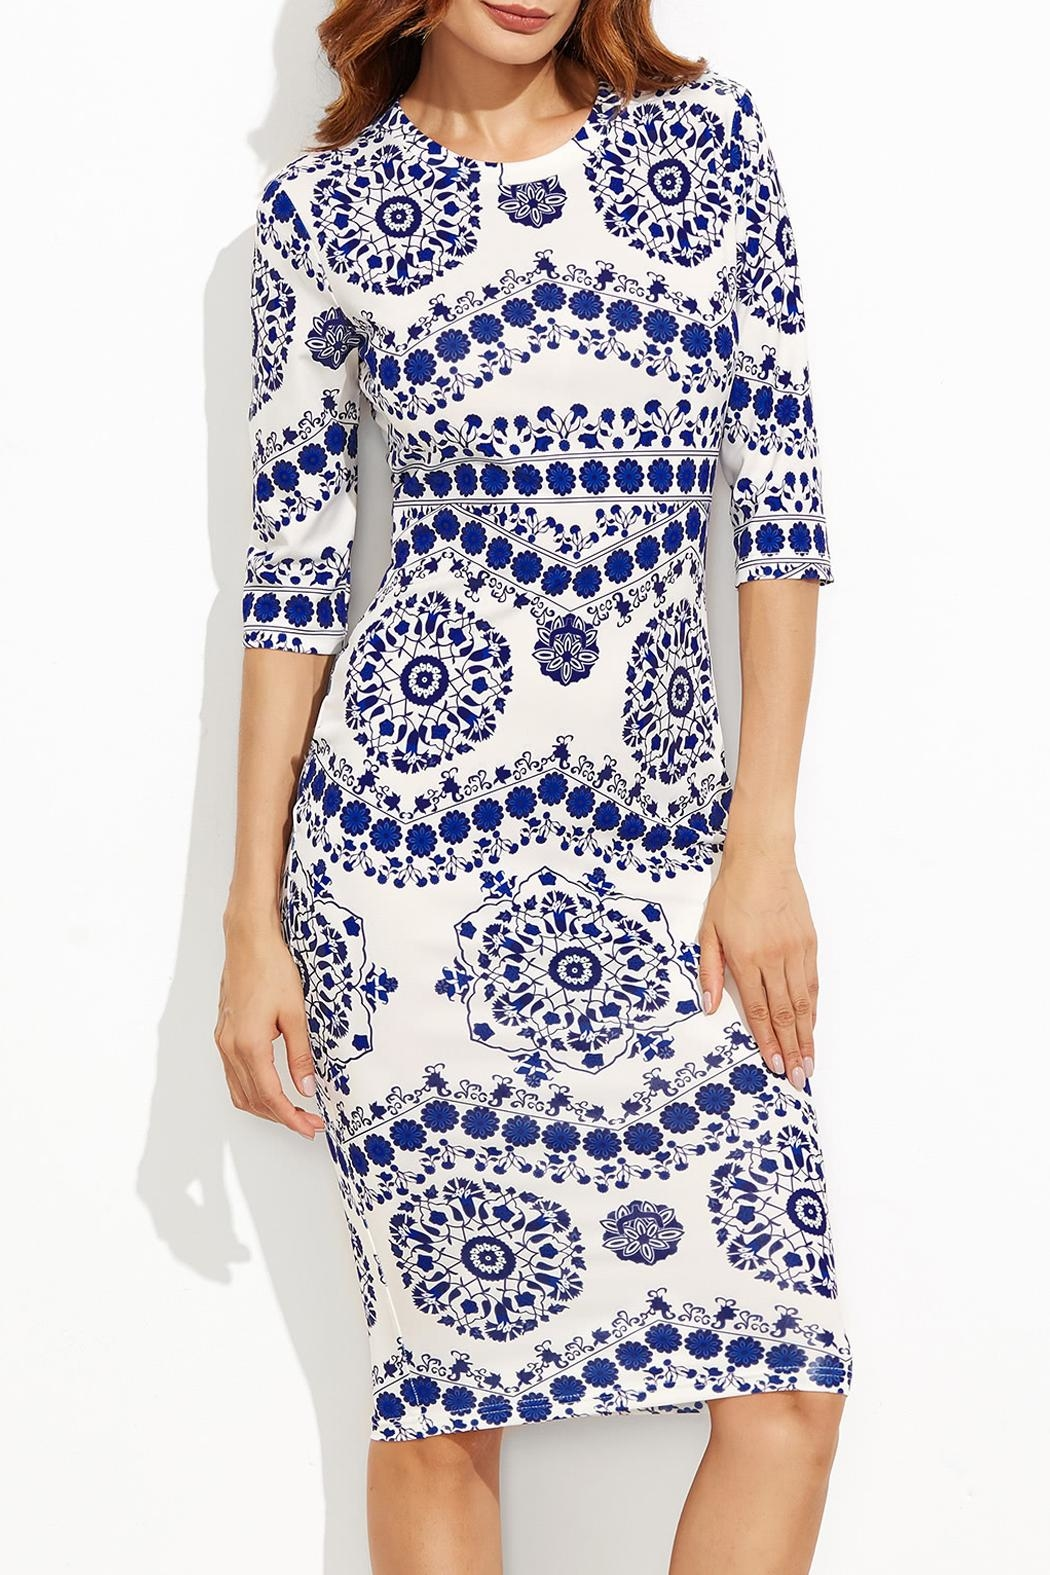 House of Atelier Porcelain Print Dress - Front Cropped Image